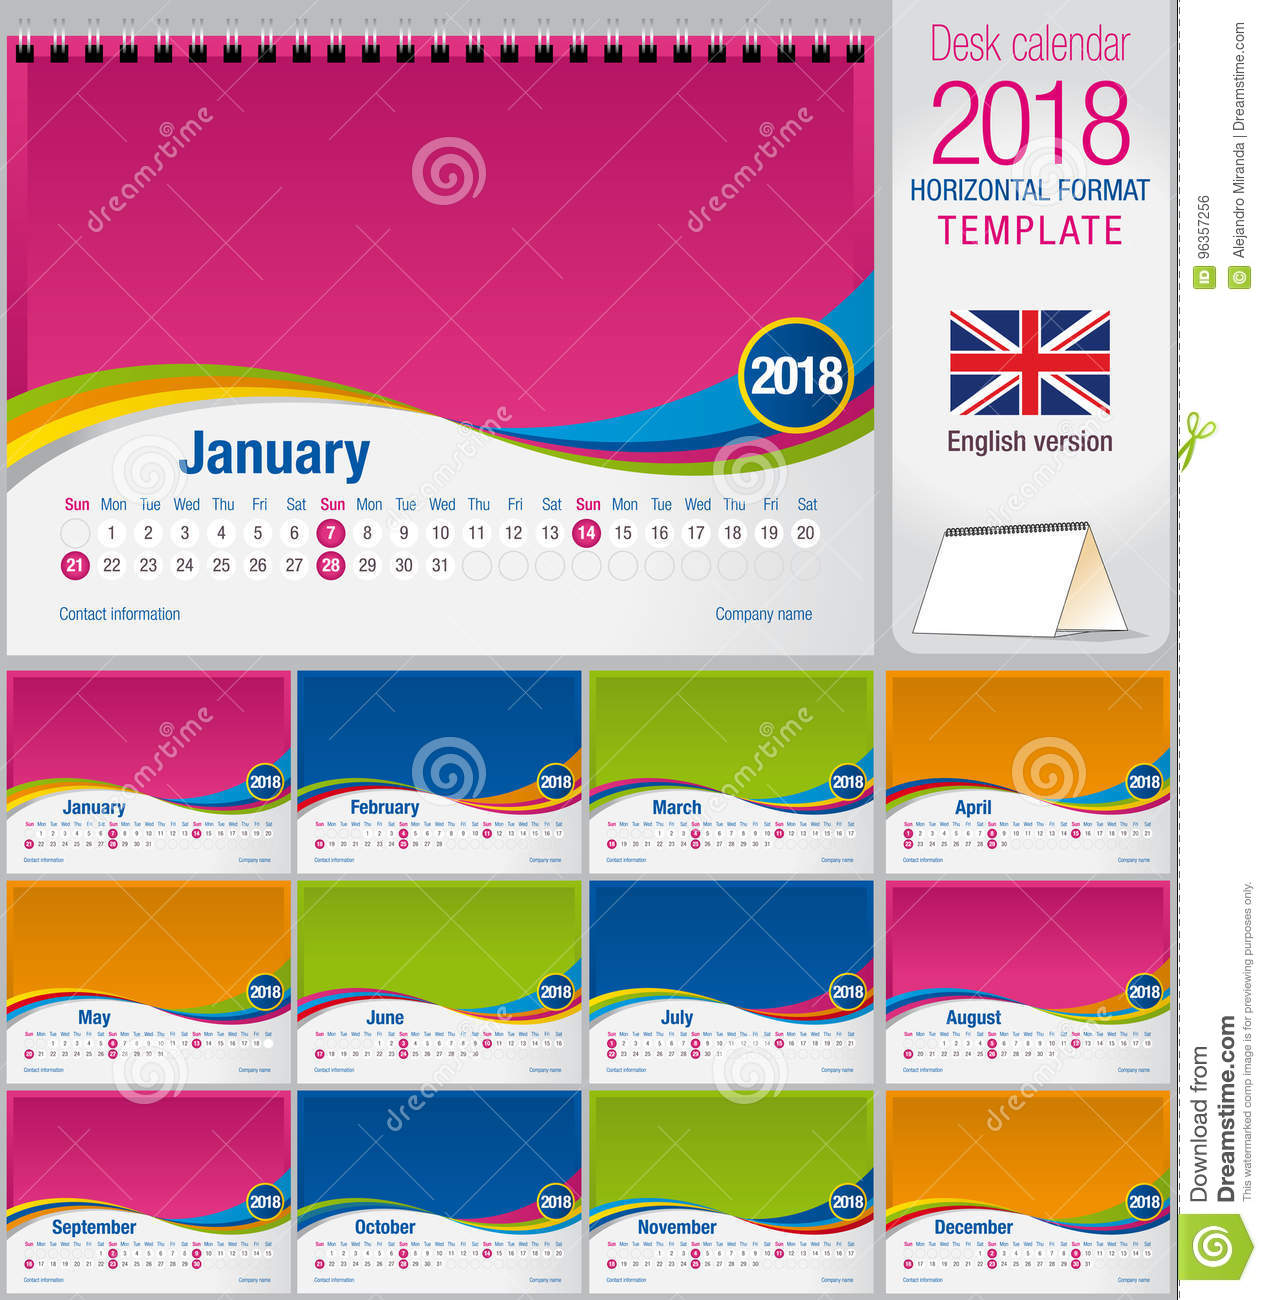 Desk triangle calendar 2018 colorful template. Size: 210mm x 150mm. Format A5. Vector image